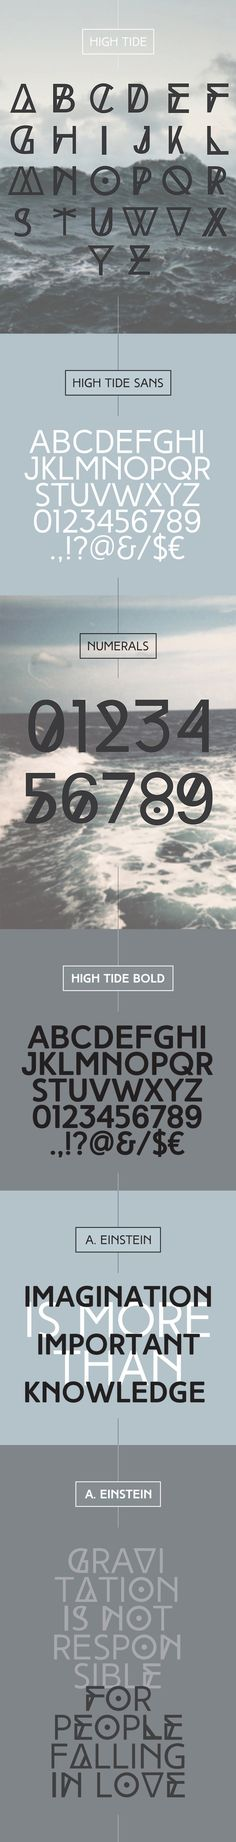 HIGH TIDE free typeface on Behance